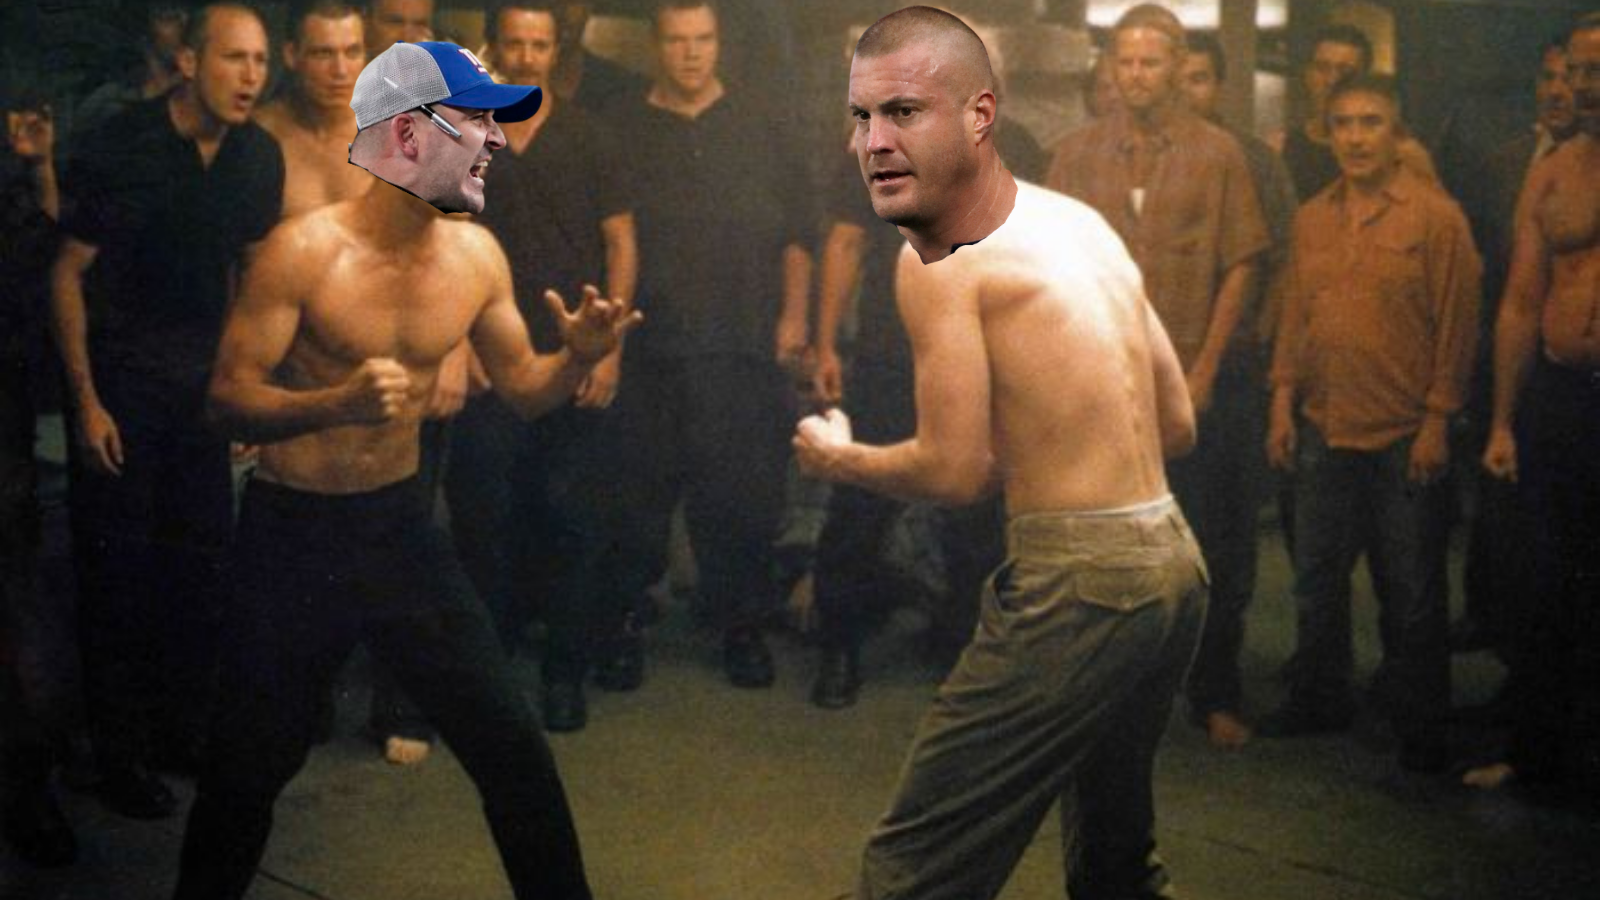 Today in the NFC East: Wednesday Morning Fight Club with the New York Giants – @JamesSantore @SkylineSpew